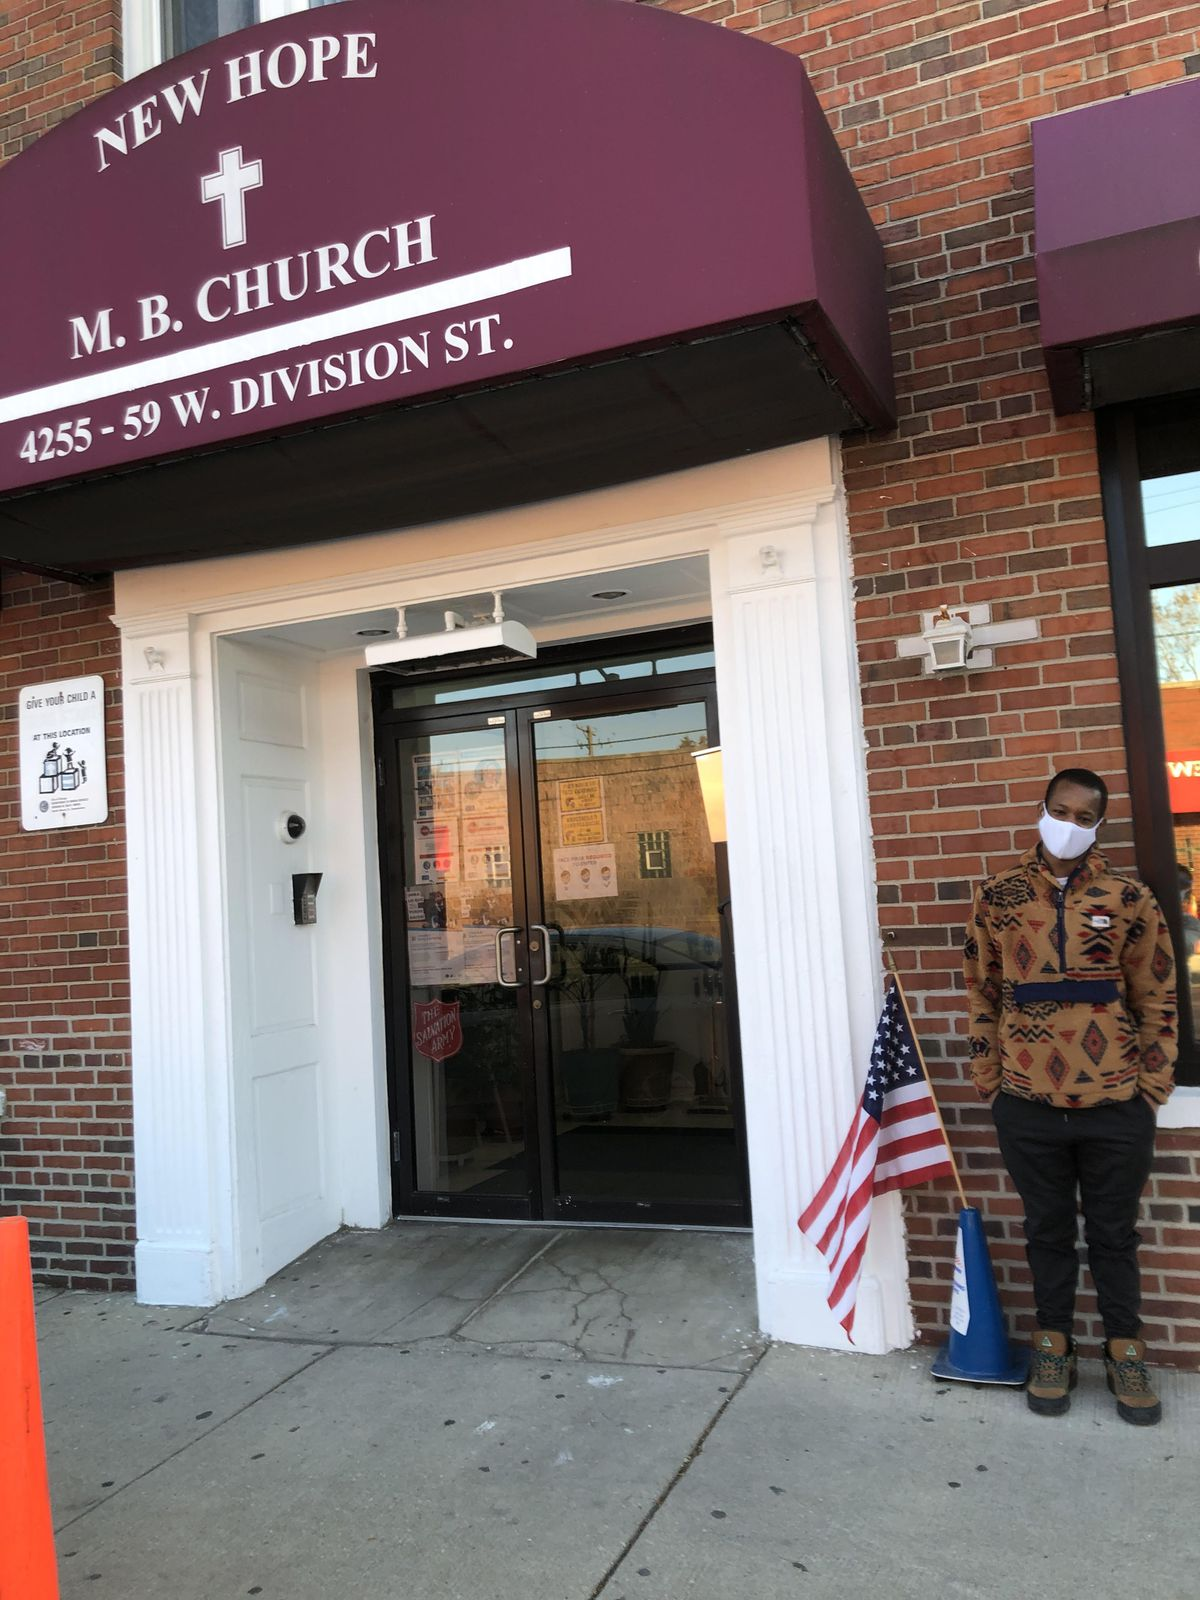 """In the West Side K-Town neighborhood, Arion Brown, 25, was working the 37th Ward's 2nd precinct at Chicago North Side New Hope Church, 4255 W Division. """"This election is critical because our elections are a reflection of the views of the American people, and of which ideology will prevail,"""" said Brown, a historian."""